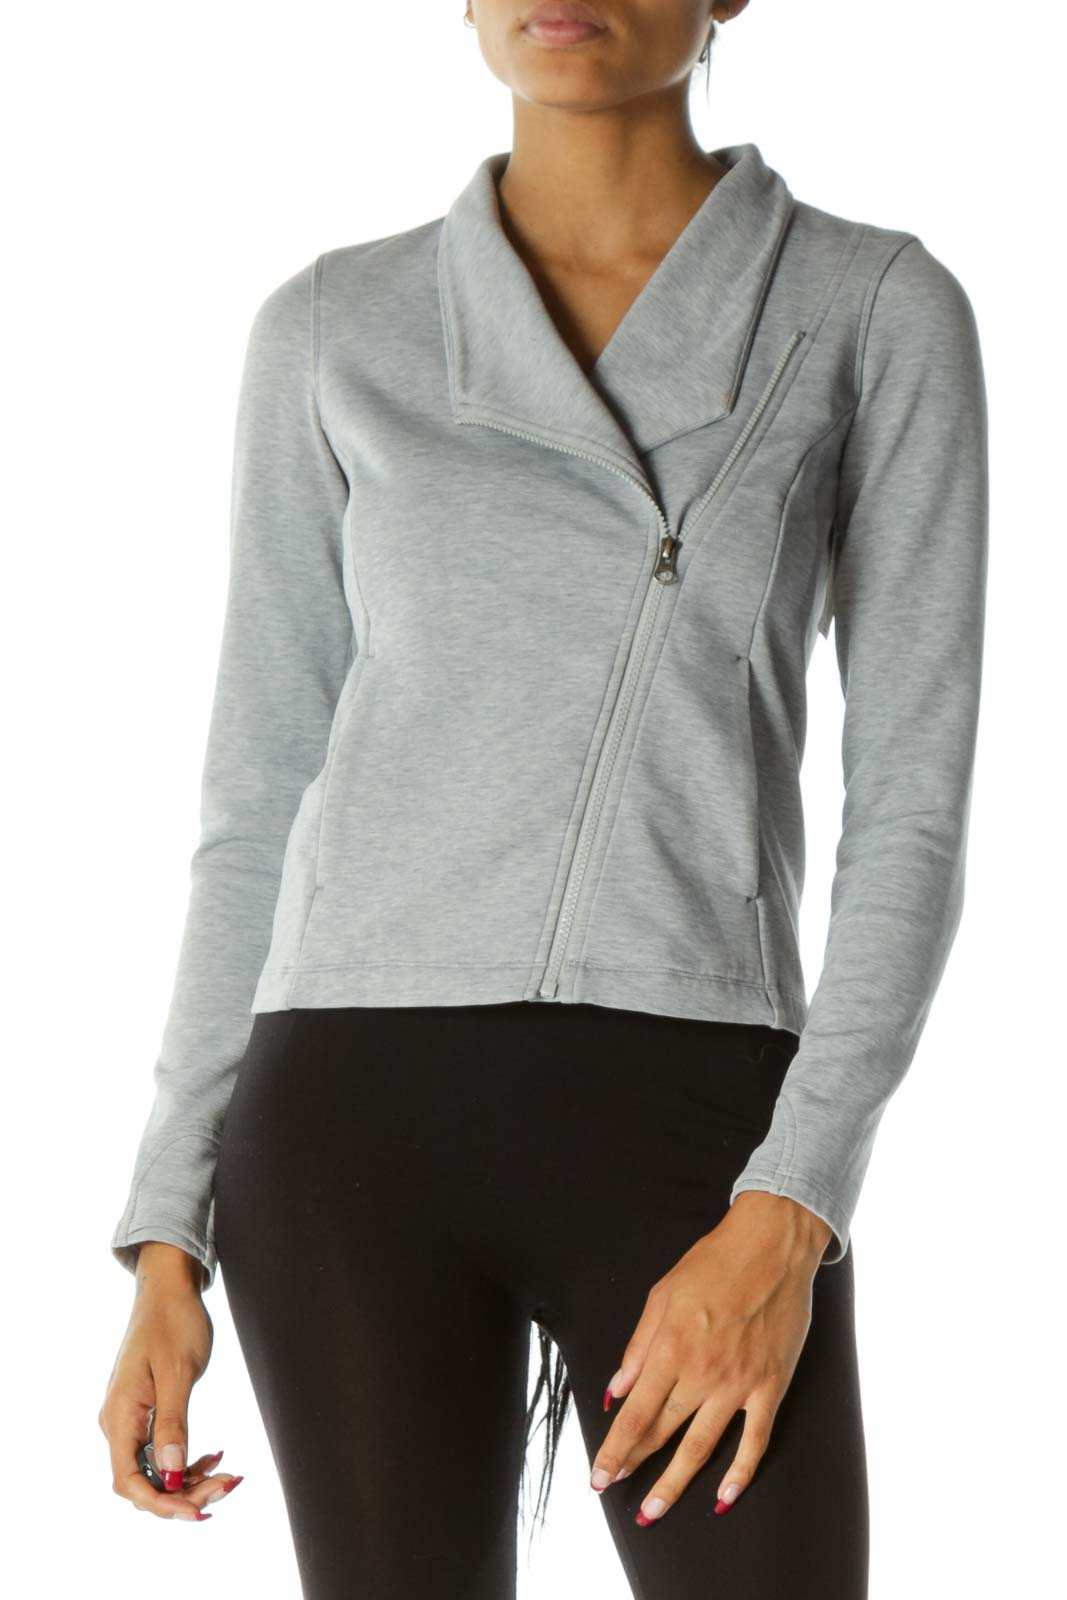 Gray Pocketed Mottled Print Zippered Sweat Active Jacket